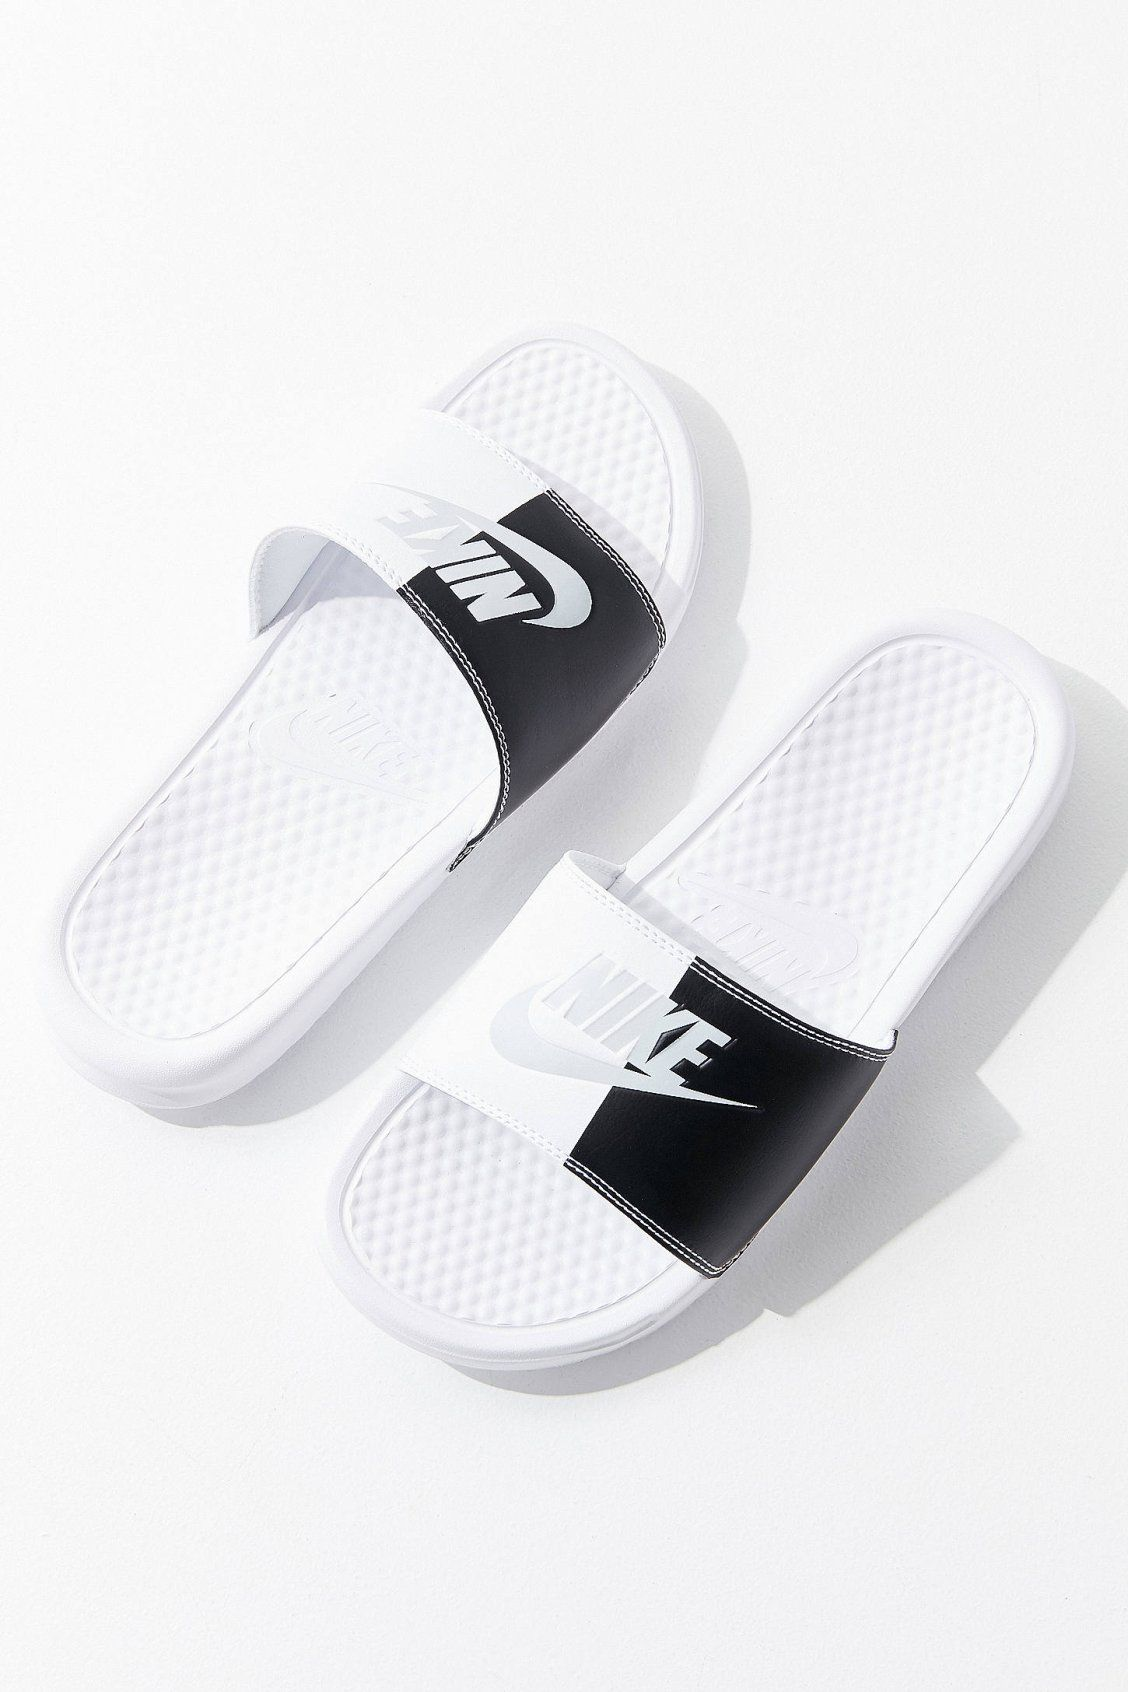 slides shoes